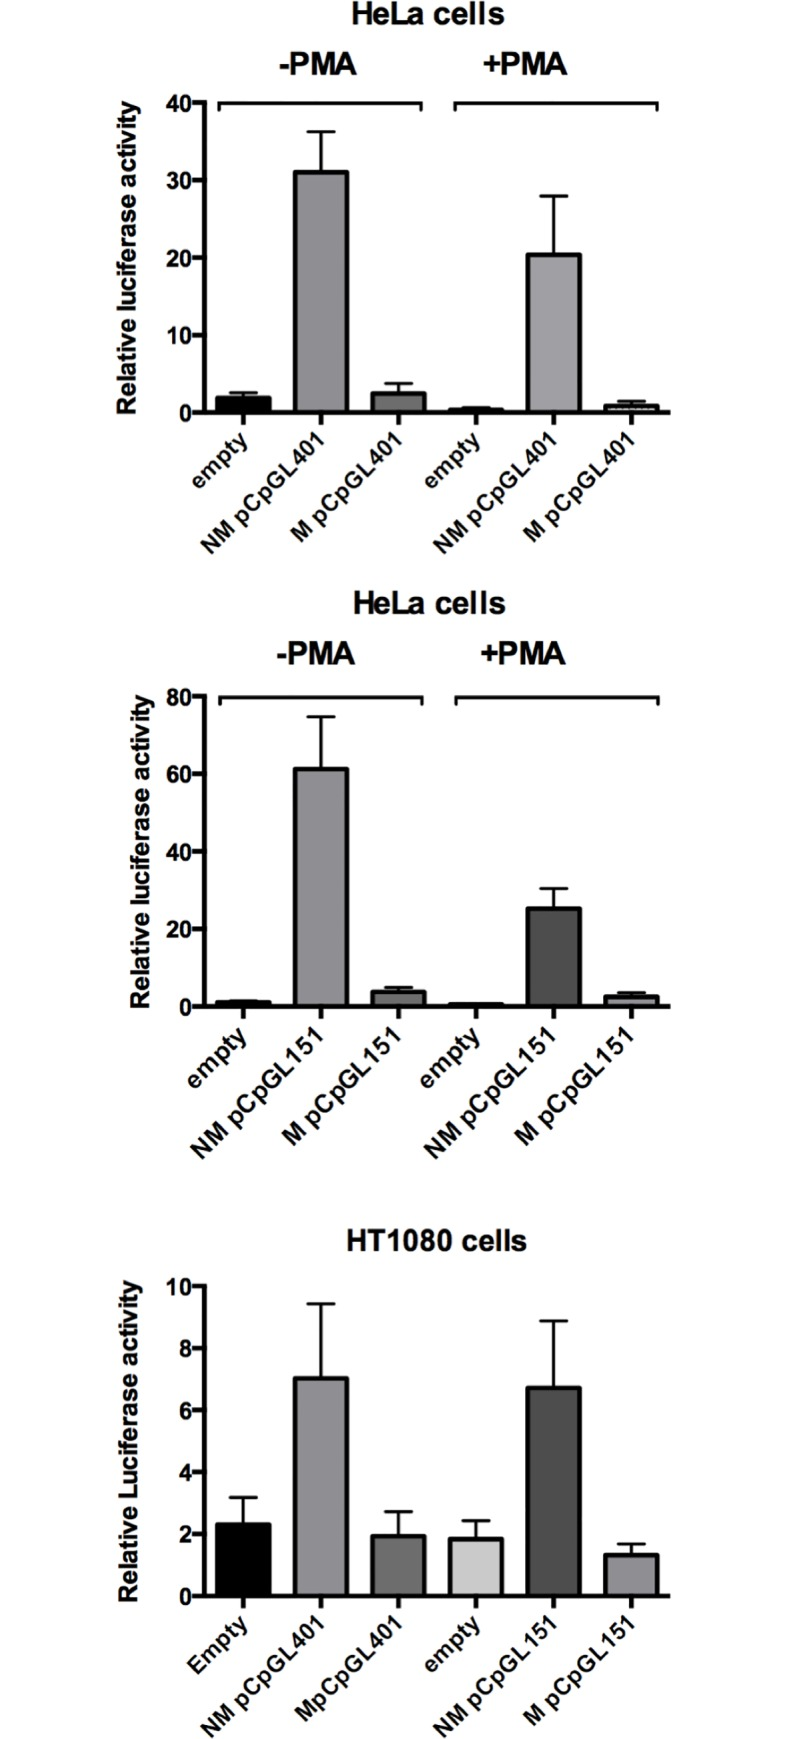 Effect of DNA methylation on PLAT promoter-driven reporter gene activity. Reporter gene activity of methylated (M) or unmethylated (NM) plasmids was compared after transfection of HeLa cells (top and center) or HT 1080 (bottom) with pCpGLprom401 and pCpGLprom151 plasmids, which contain the PLAT promoter region from -401 to +151 and -151 to +151, respectively, linked to a CpG-less firefly luciferase gene. Note that reporter gene activity of the methylated plasmids was the same as that of reporter gene plasmids lacking a promoter (empty) and markedly reduced compared to unmethylated plasmids. Results are presented as means ± SEM of 3 to 4 independent experiments.